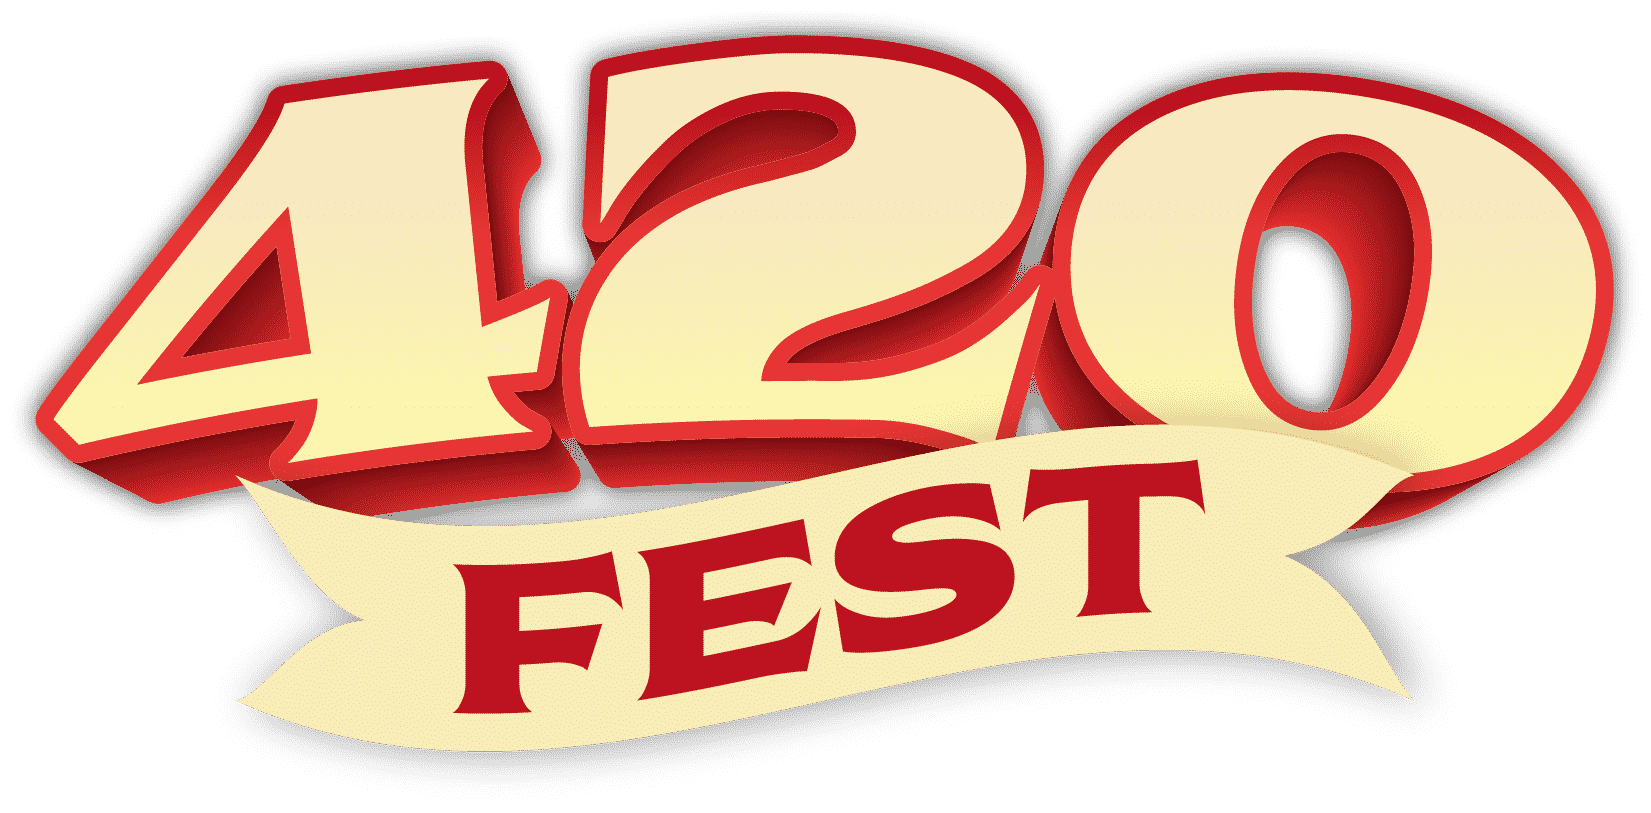 420 Fest Cannabis Festivities And Live Music